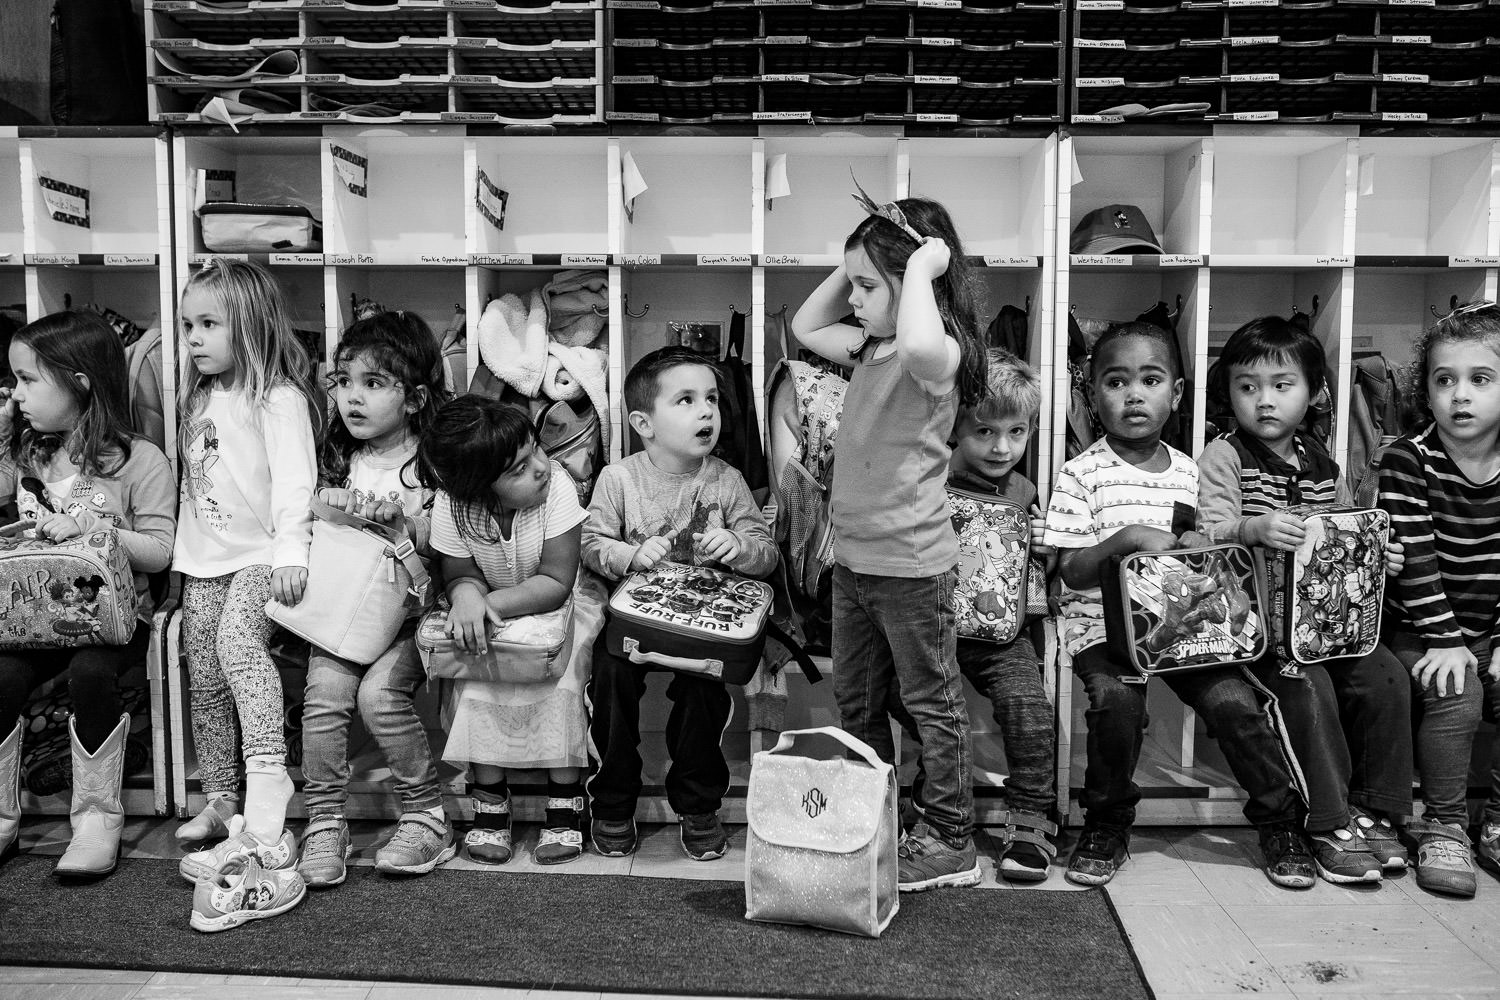 Preschoolers sit in their cubbies with their lunchboxes.